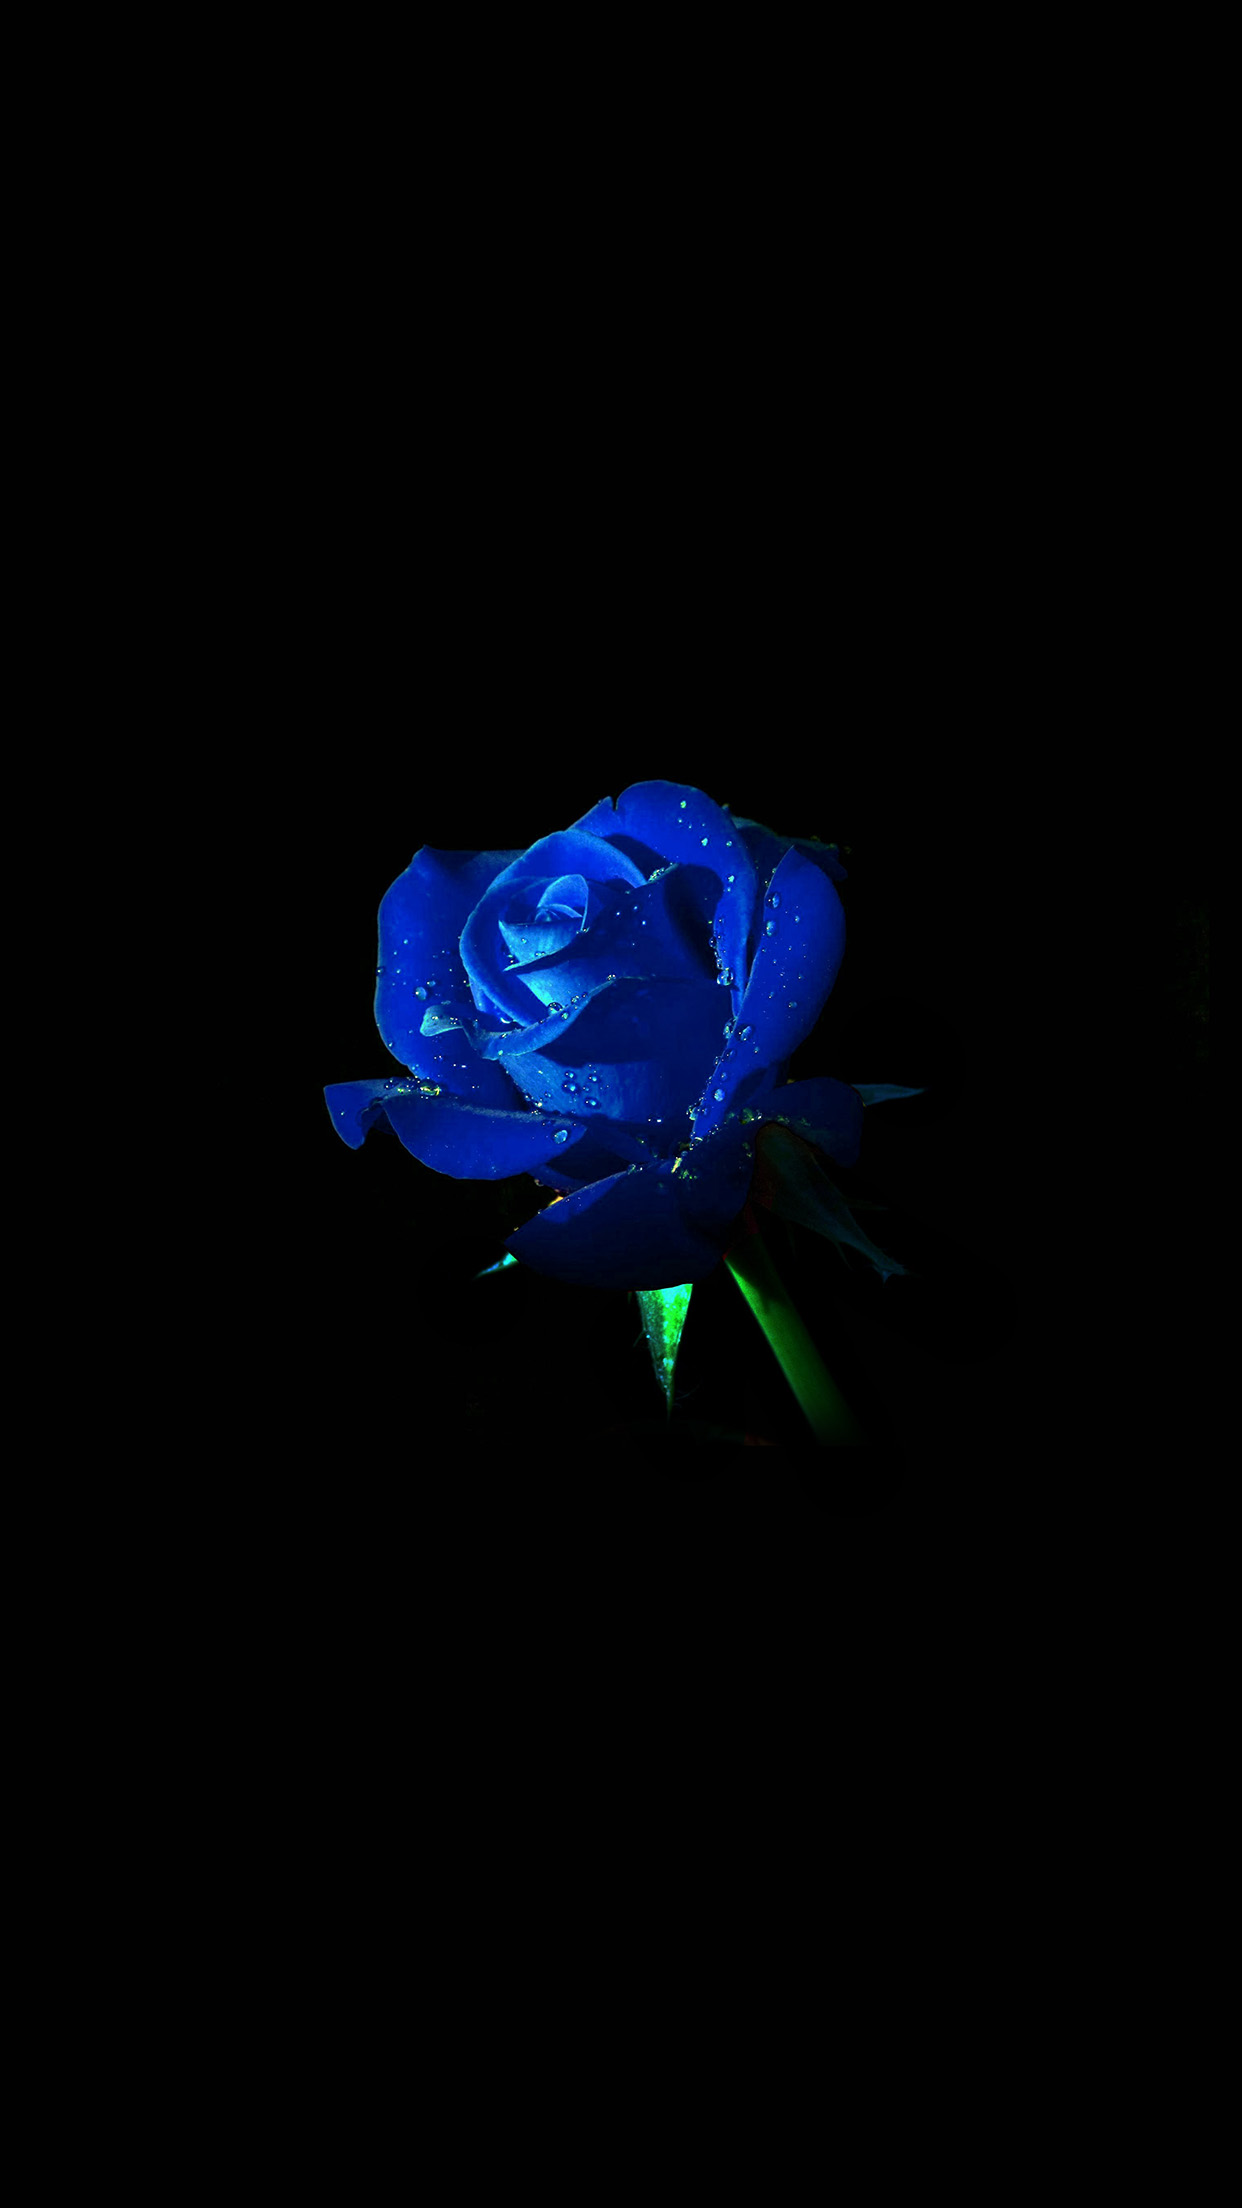 Blue rose dark flower nature android wallpaper android - Dark blue wallpaper hd for android ...